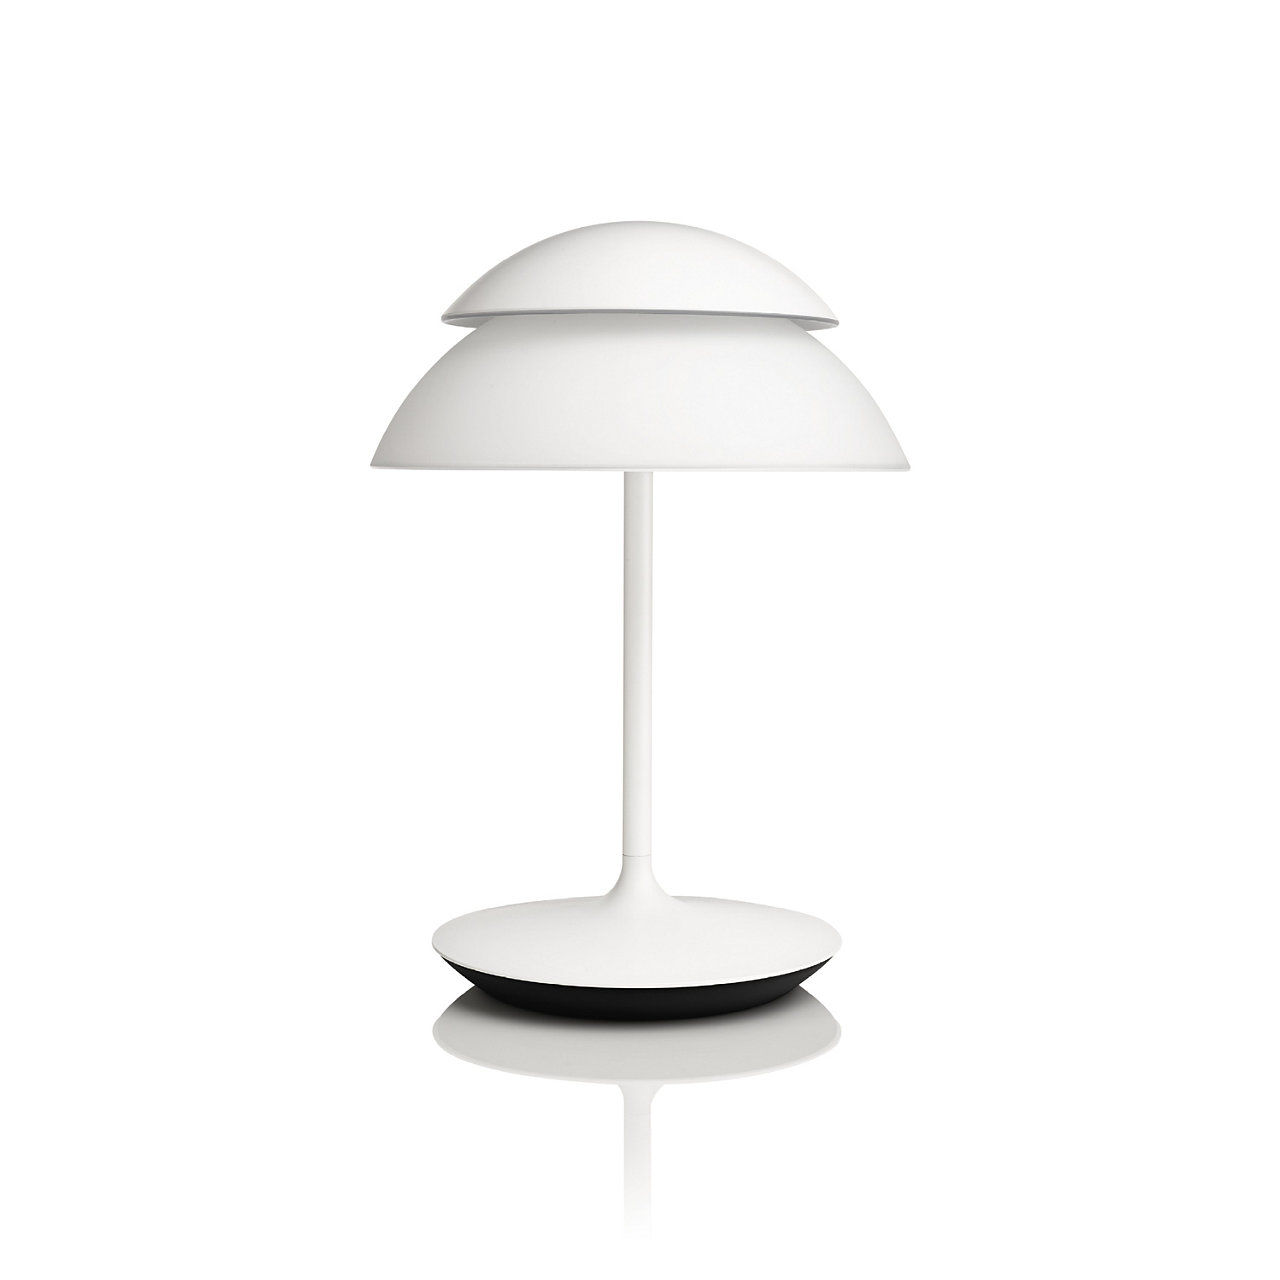 Hue Beyond Dimmable LED Smart Table Lamp